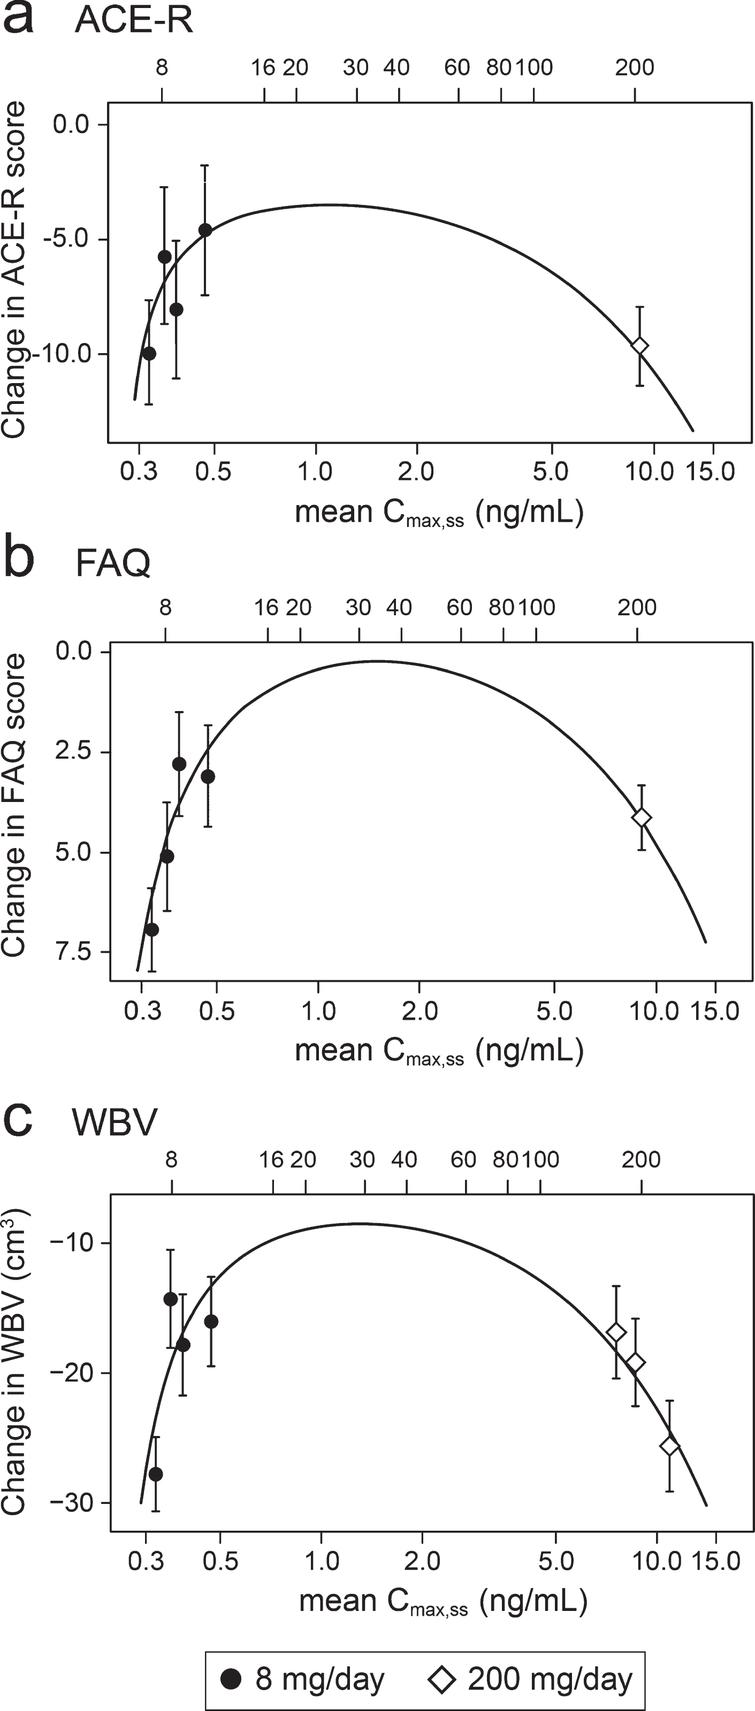 Expanded Hill equation analysis of pharmacological activity of hydromethylthionine on change in ACE-R, FAQ, and WBV using model-derived least squares mean and standard error estimates of change over 52 weeks for clinical (a,b) and MRI volumetric (c) endpoints according to plasma concentration group (8 mg/day) or dose (200 mg/day). Scales at the top of each panel indicate actual doses or calculated theoretical intermediate doses.